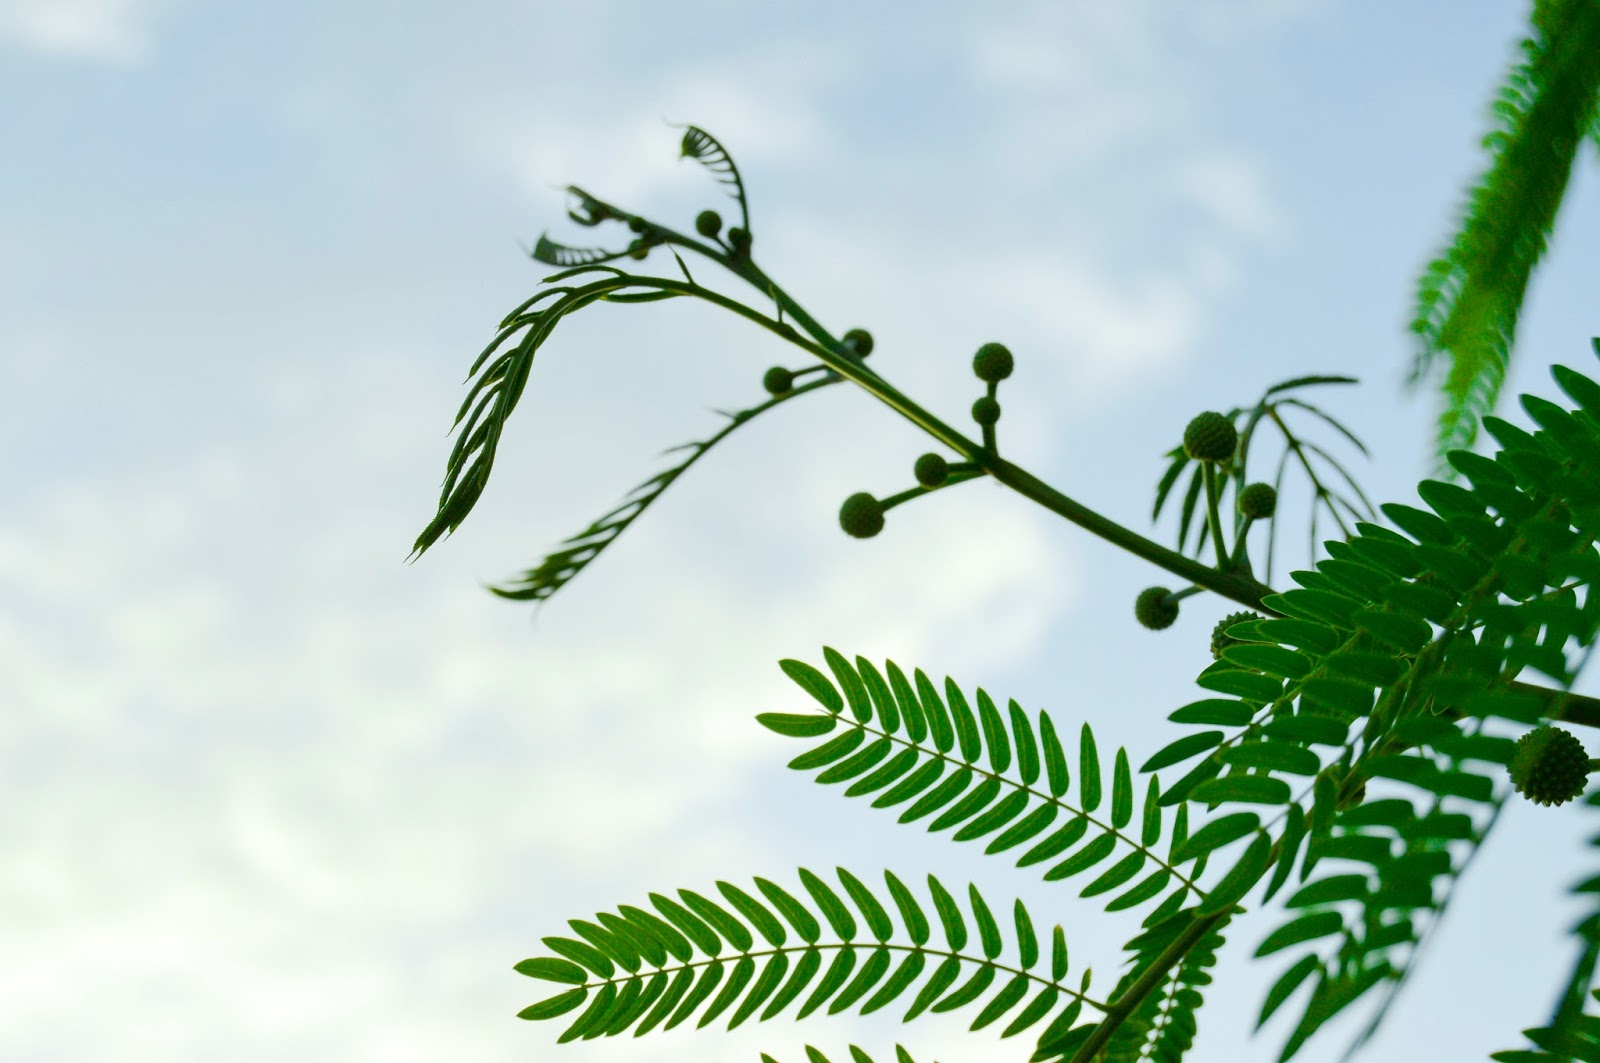 Green Leaves & Sky View Free Stock Photos & Wallpapers